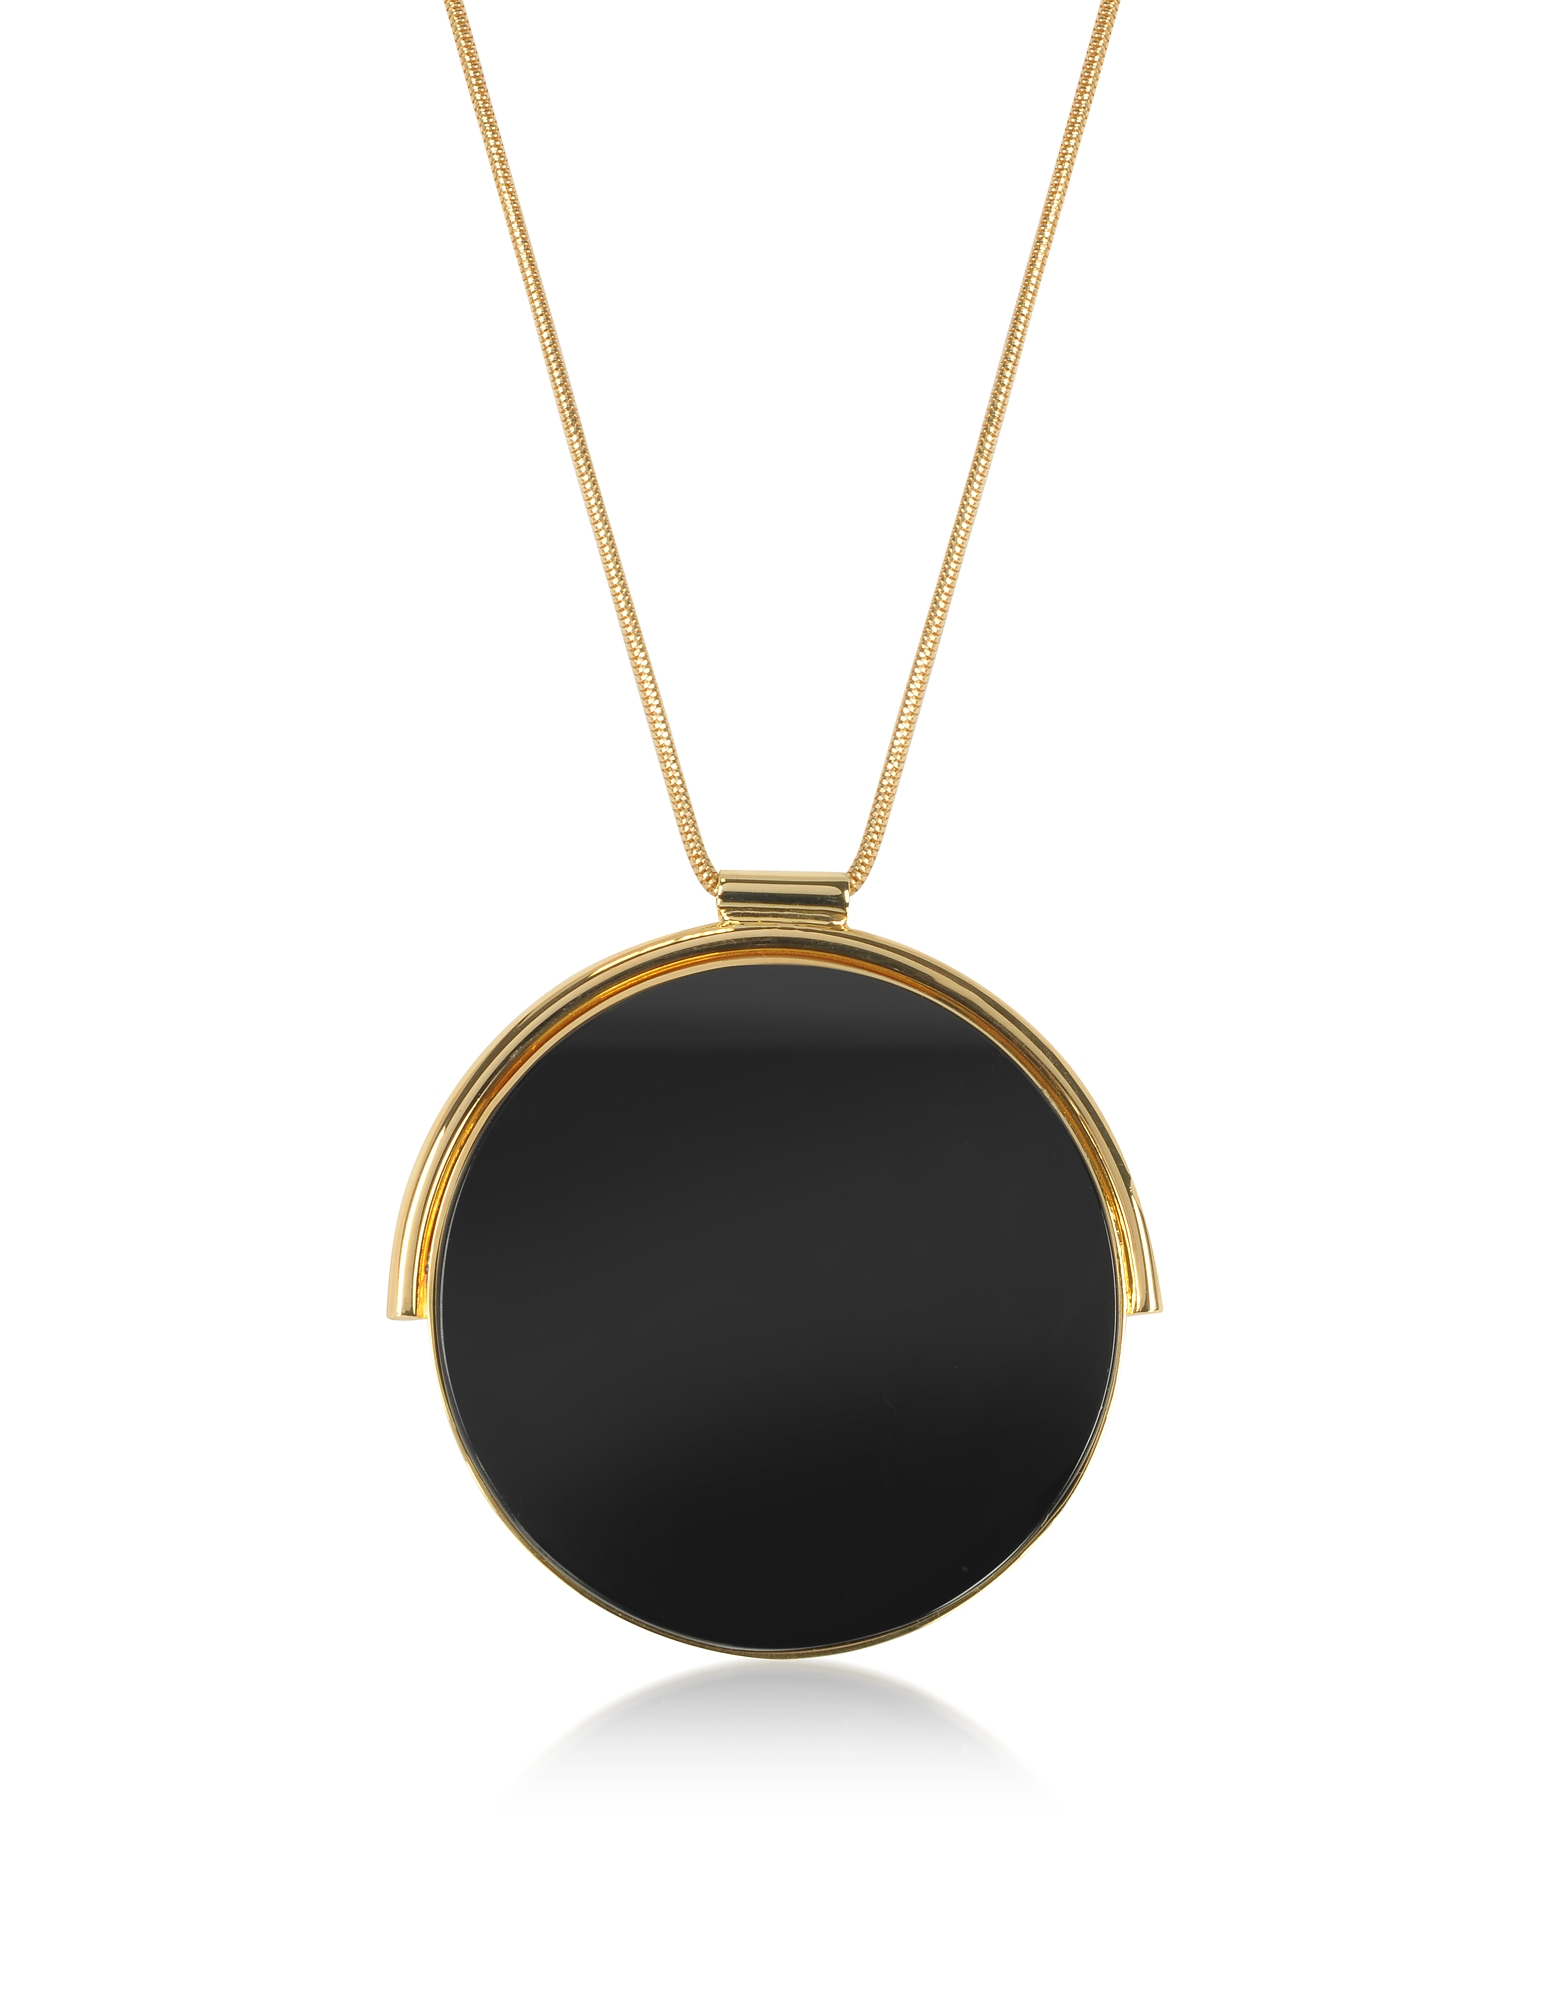 Egotique Necklaces, Arlequin Golden Brass Long Necklace w/Black Round Pendant